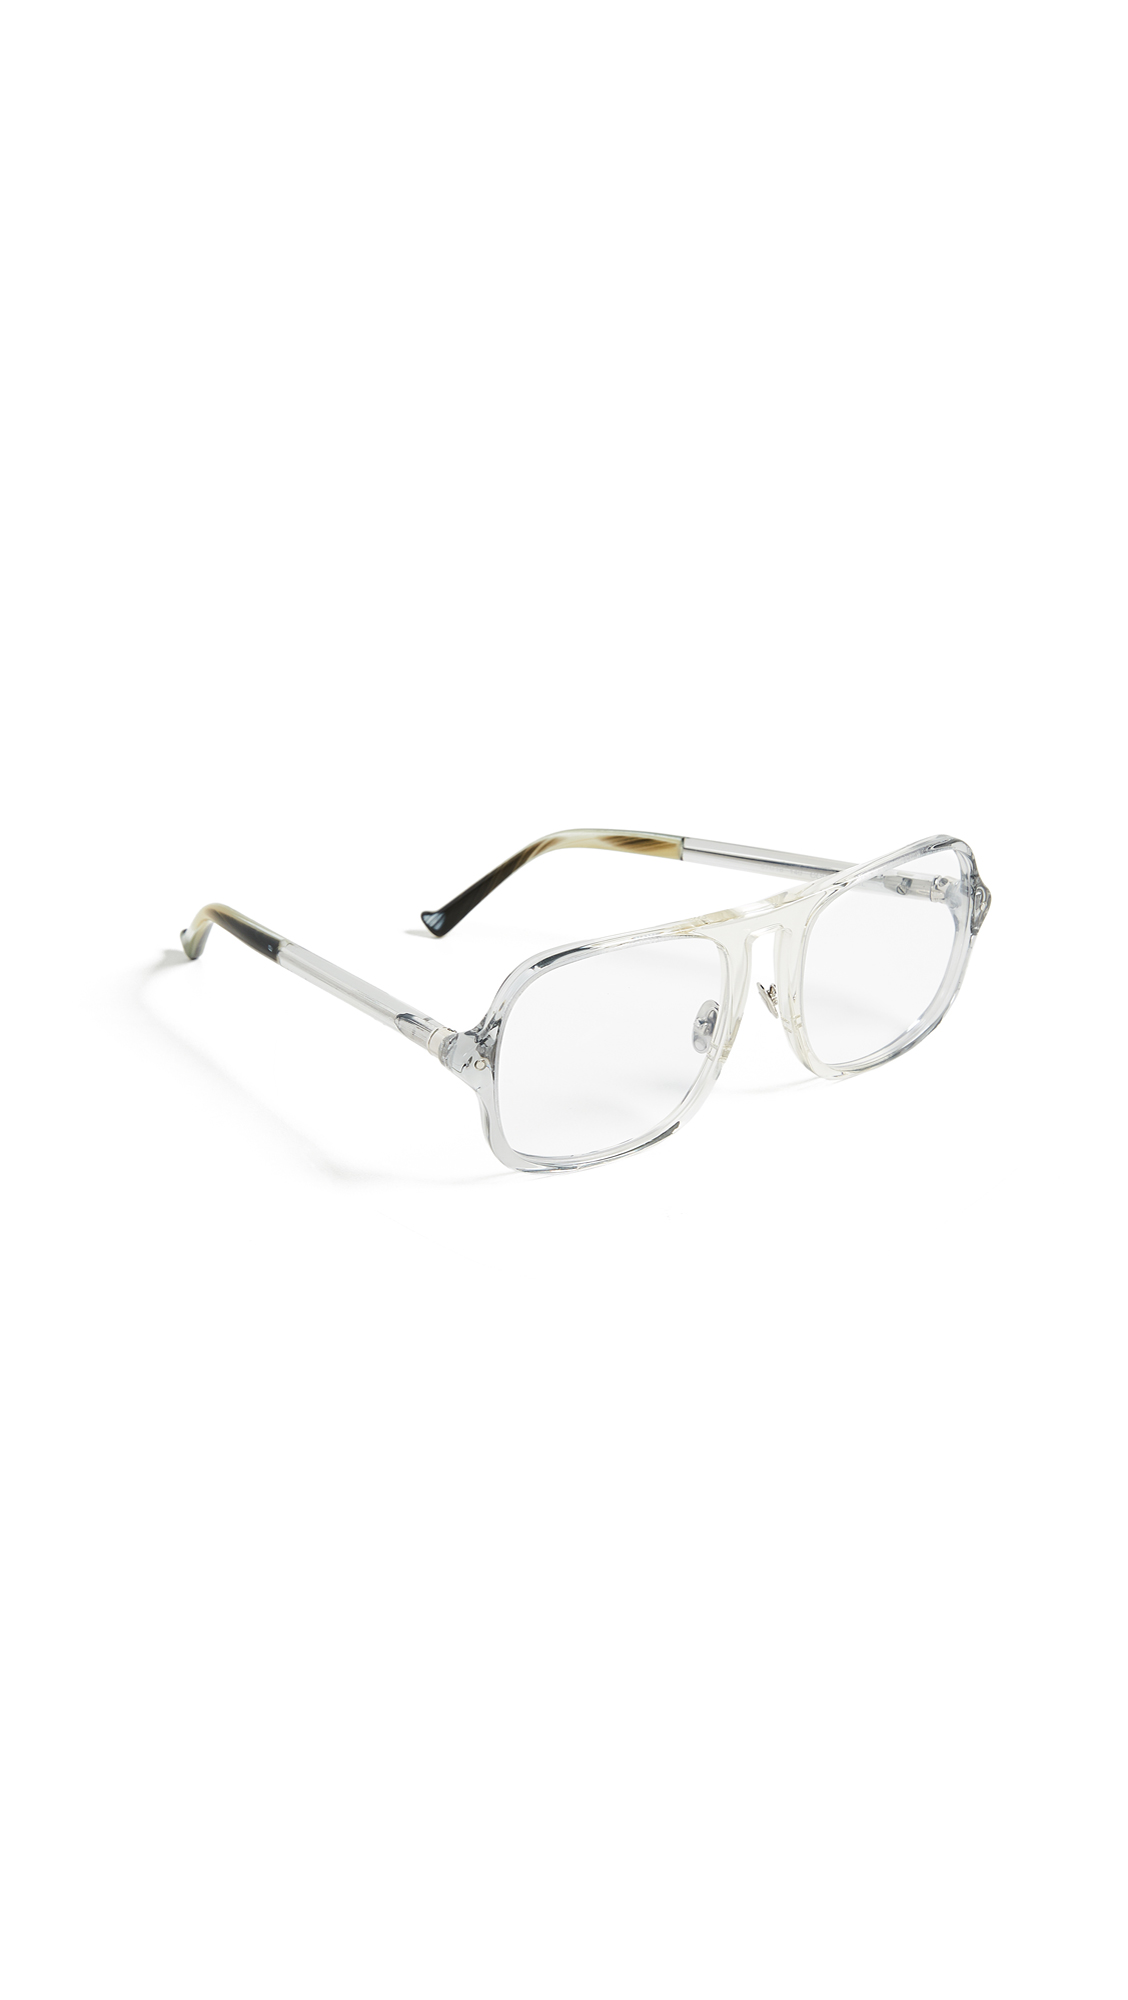 GREY ANT Coum Glasses in Clear/Clear